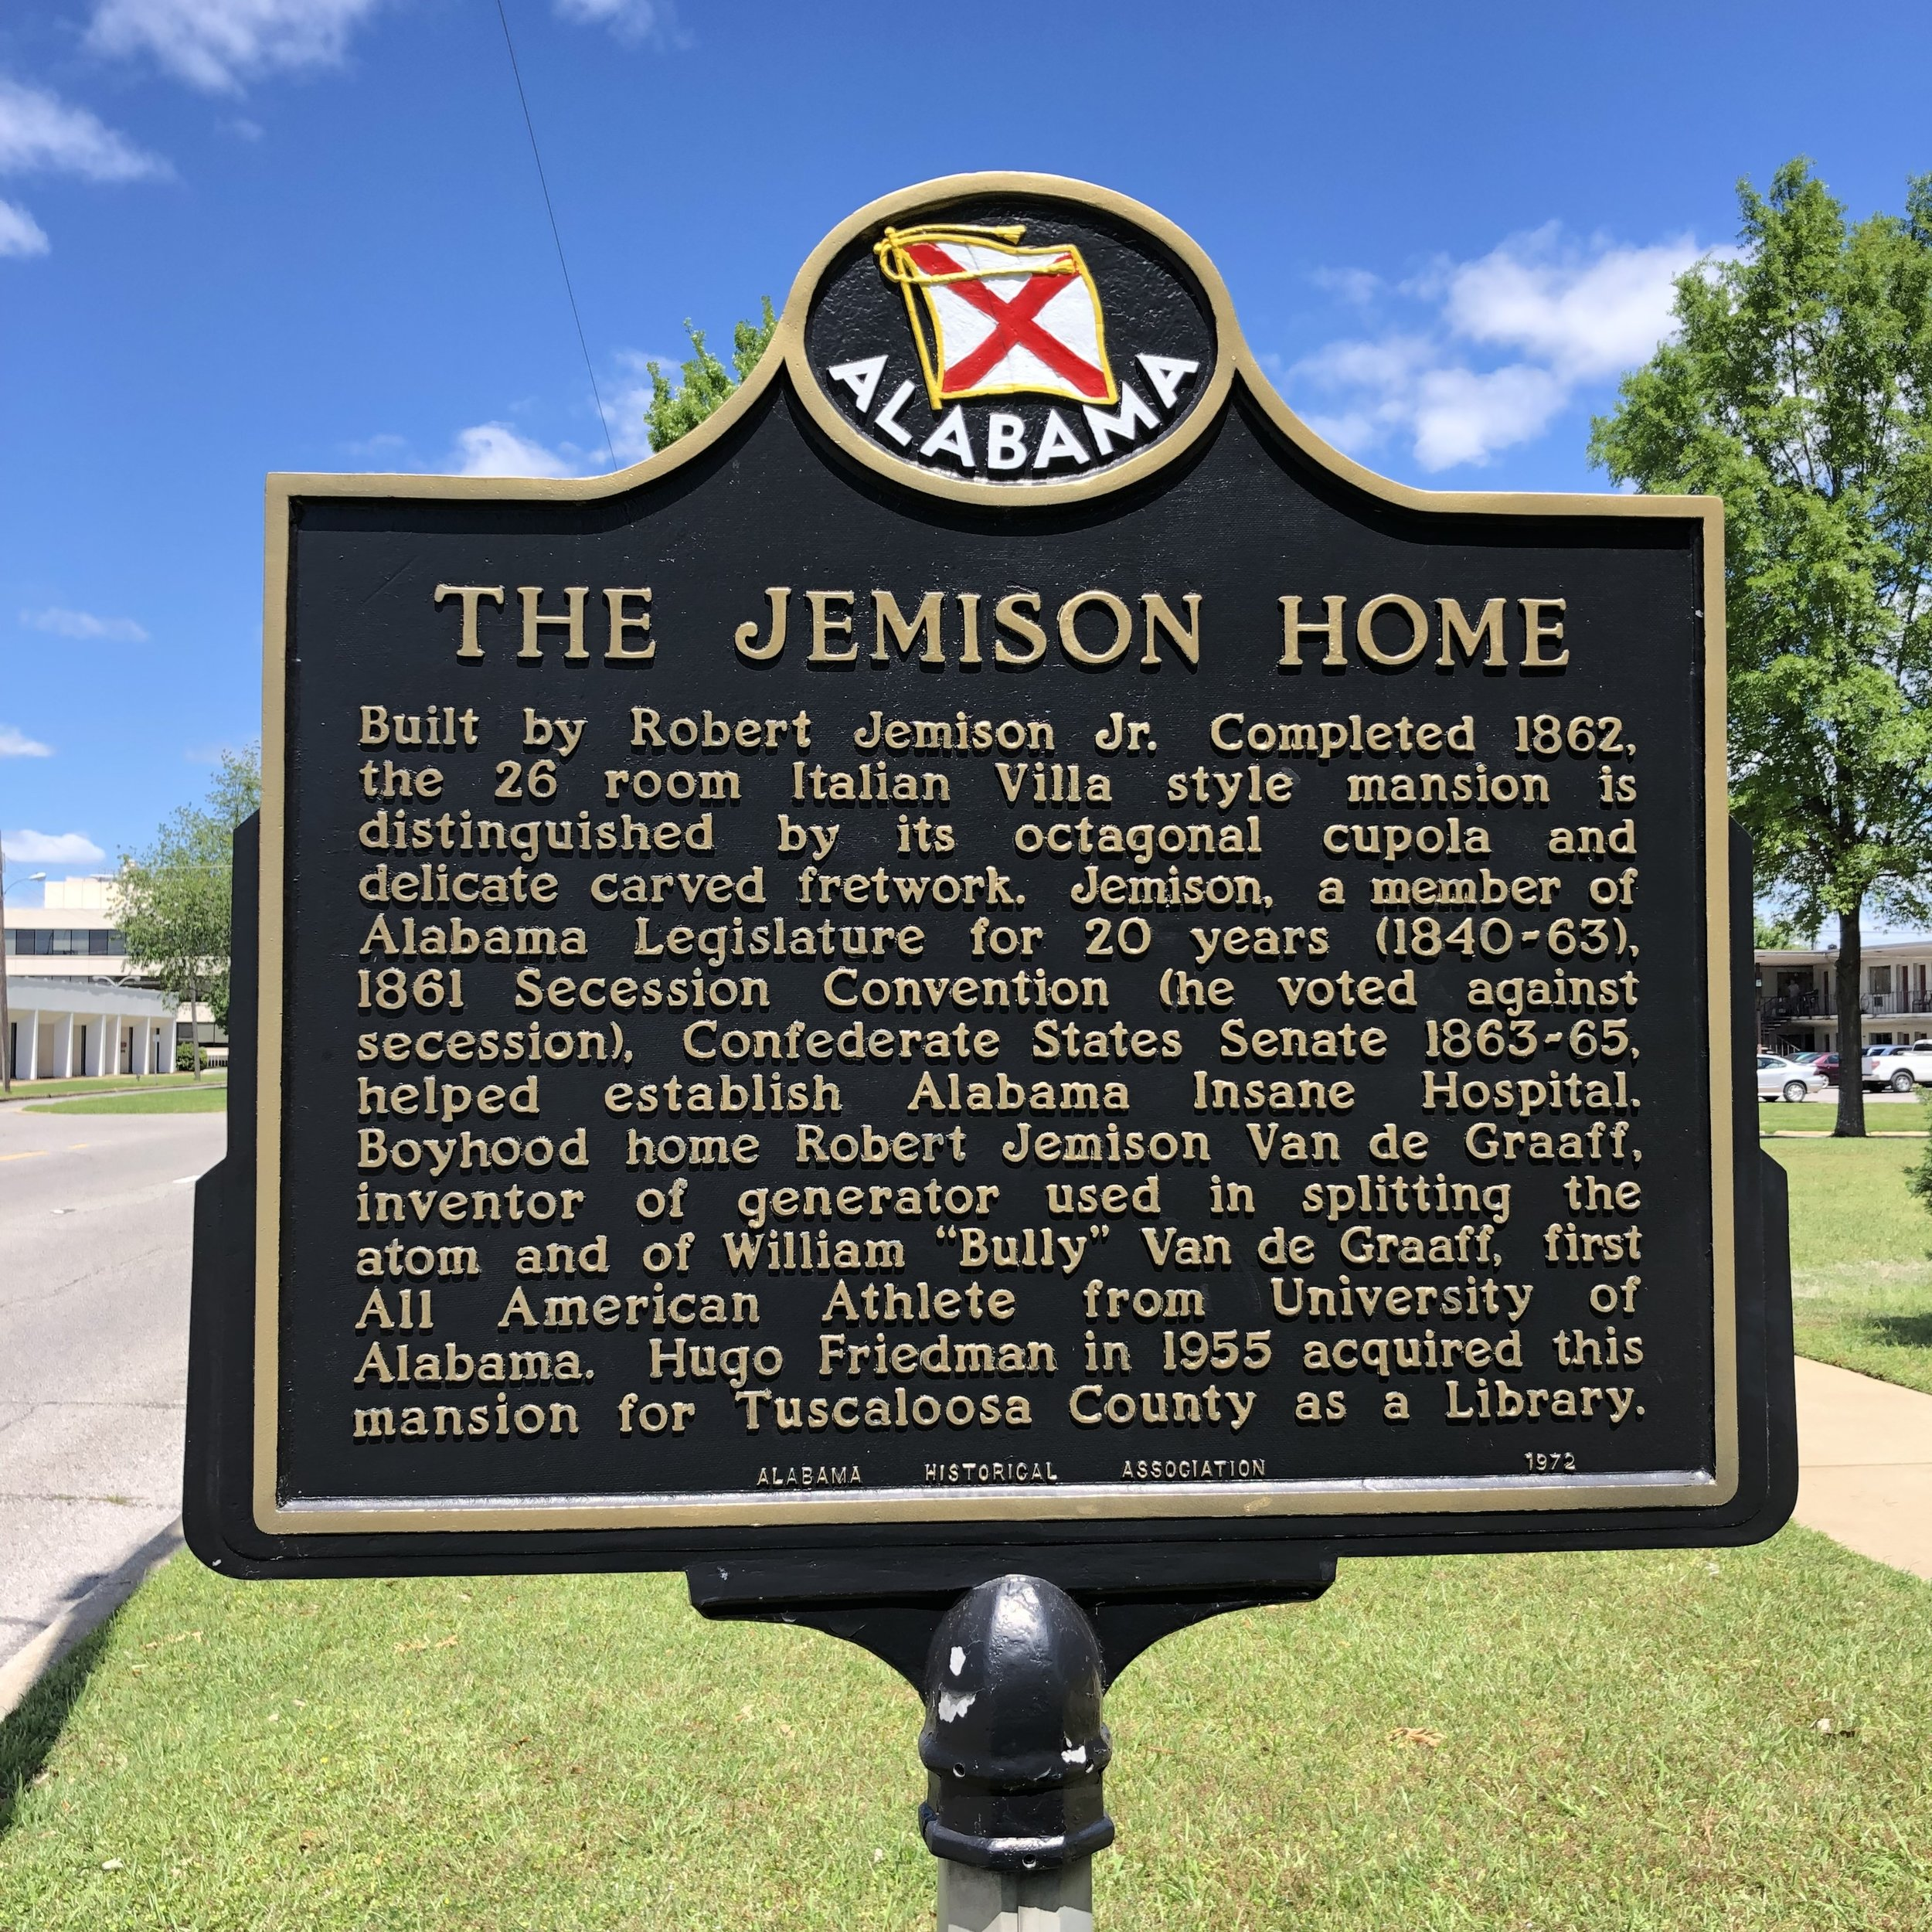 Jemison Home Marker, Tuscaloosa, AL … Photo by Caroline Pugh